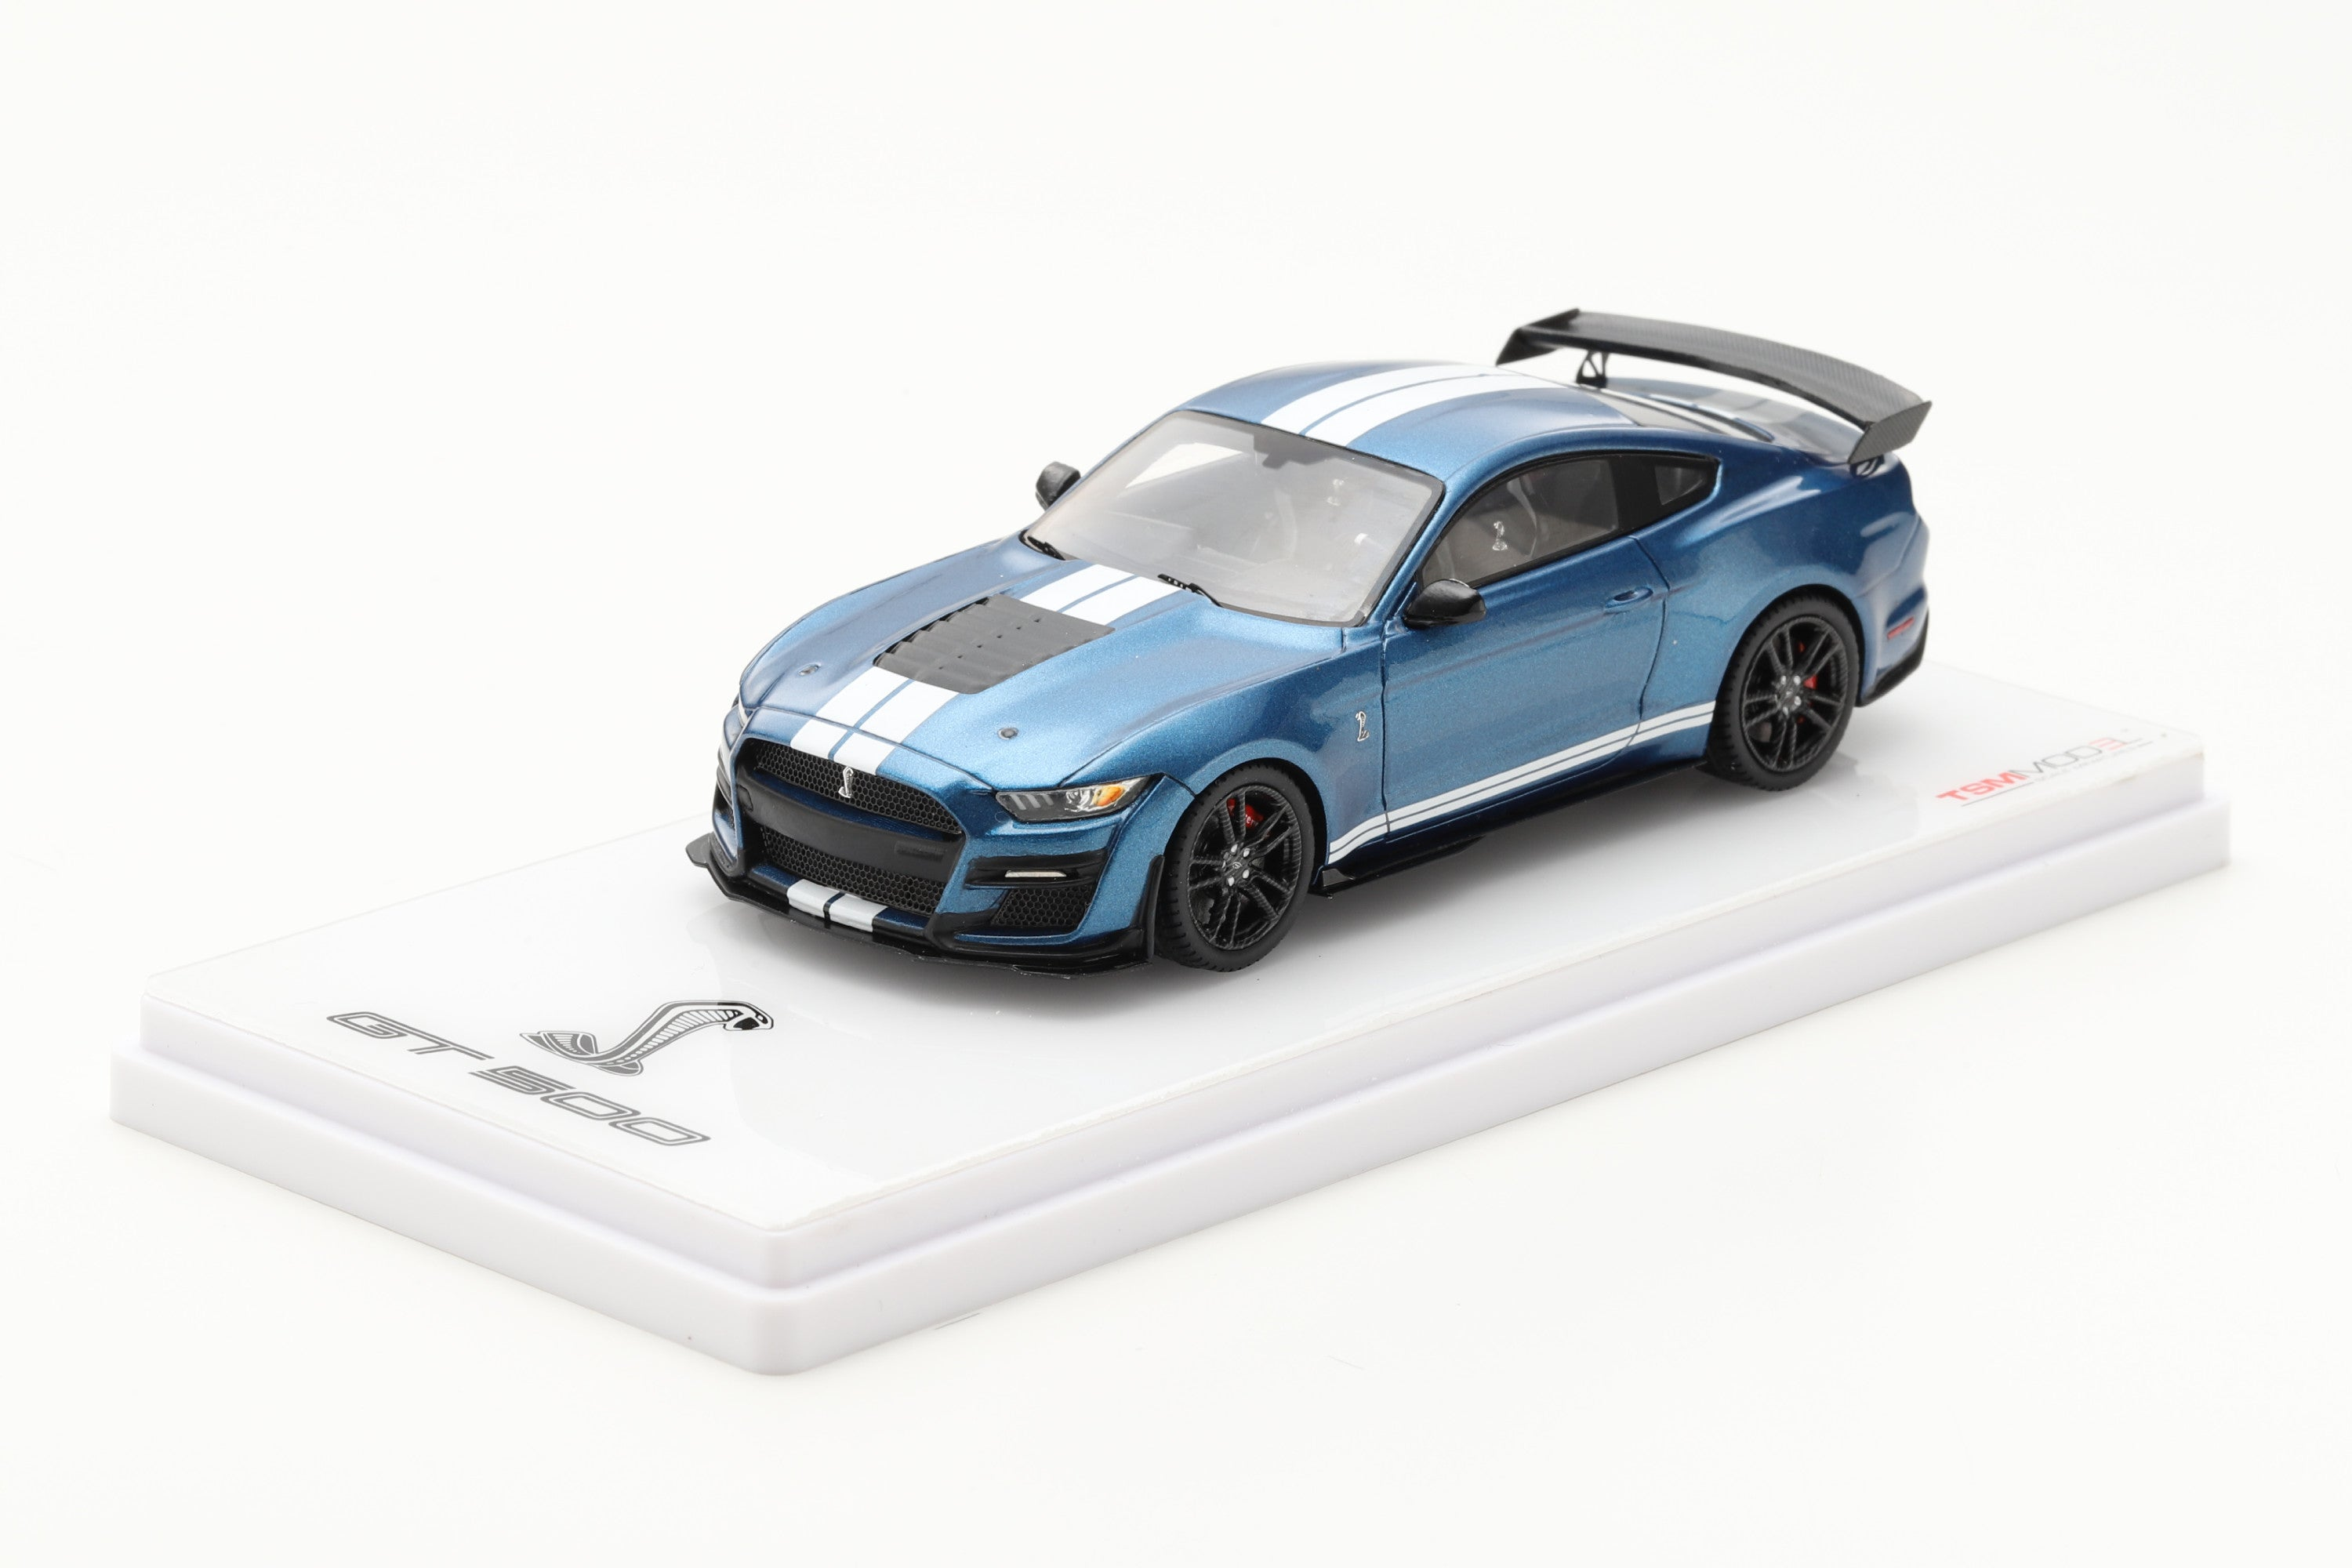 Ford Mustang Shelby GT500 (2020) | 1:43 Scale Model Car by TSM | Front Quarter